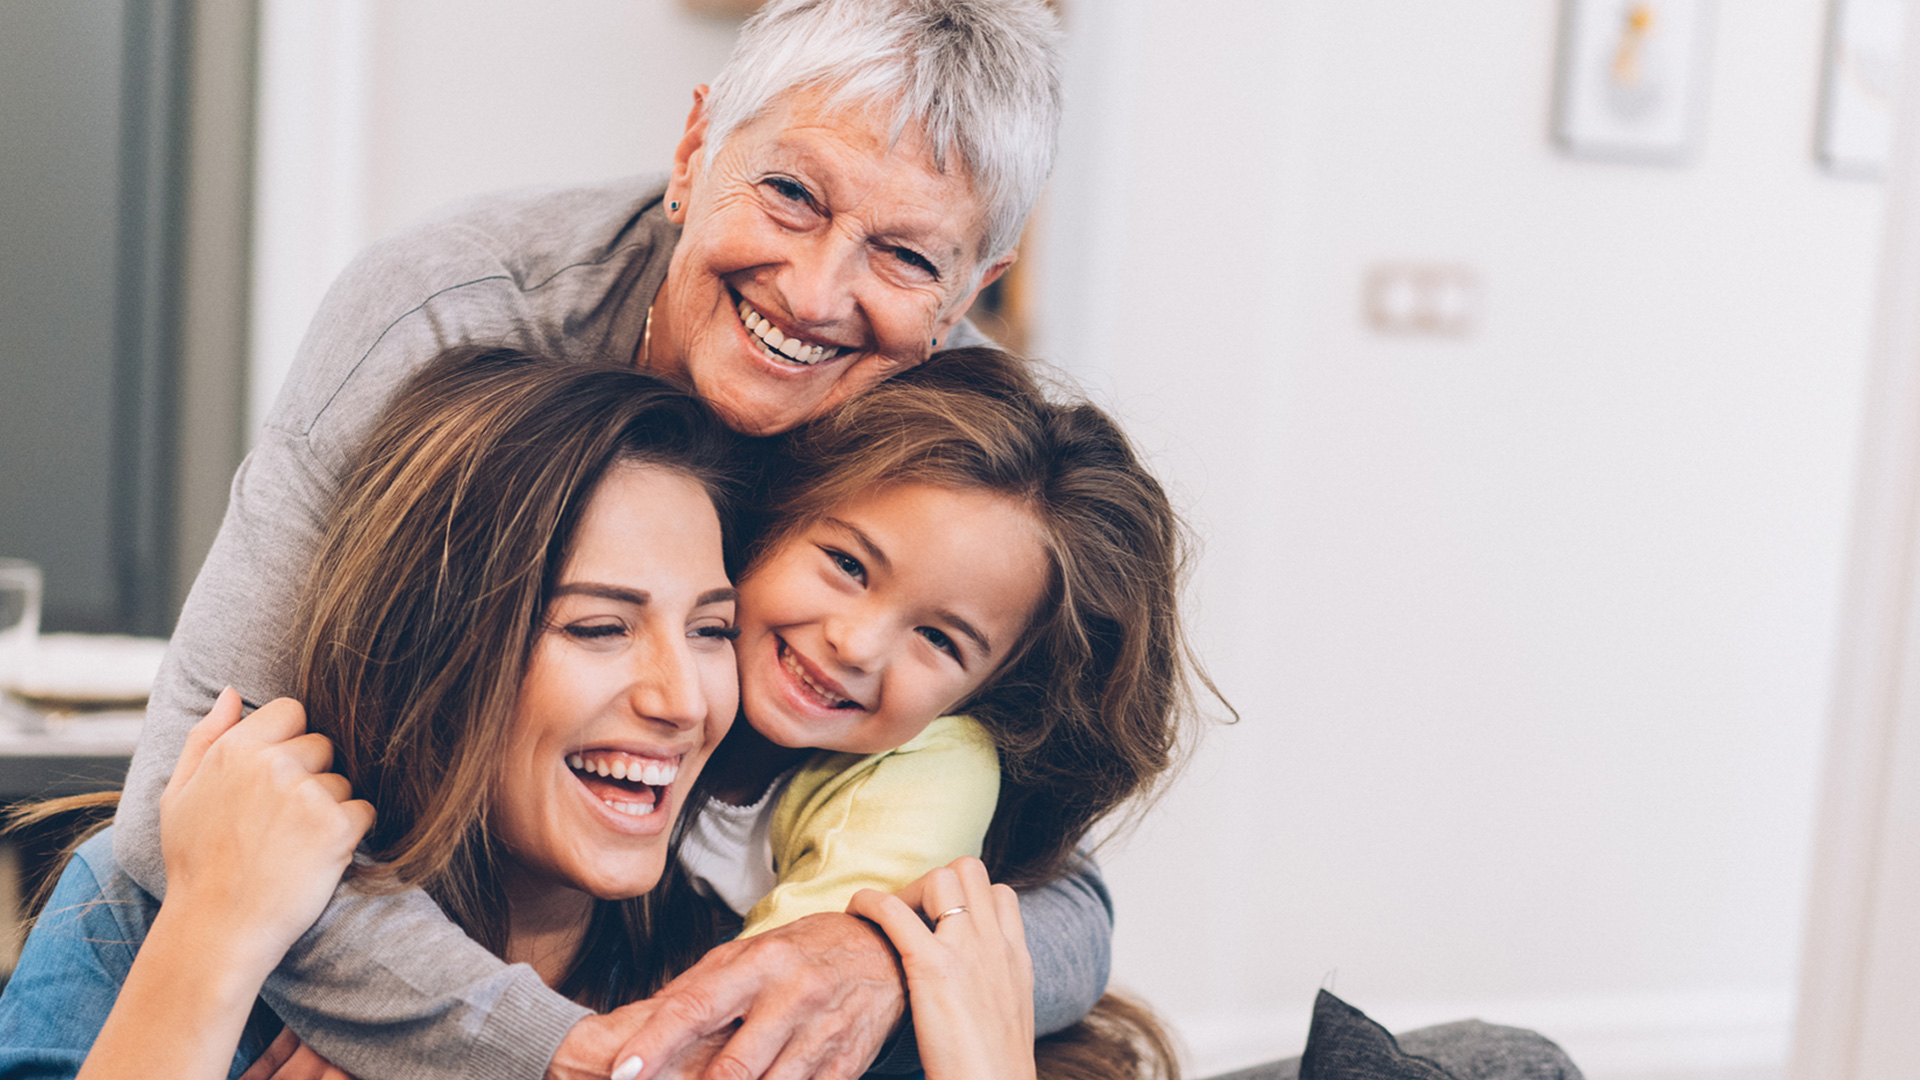 Three generations of women hugging each other.